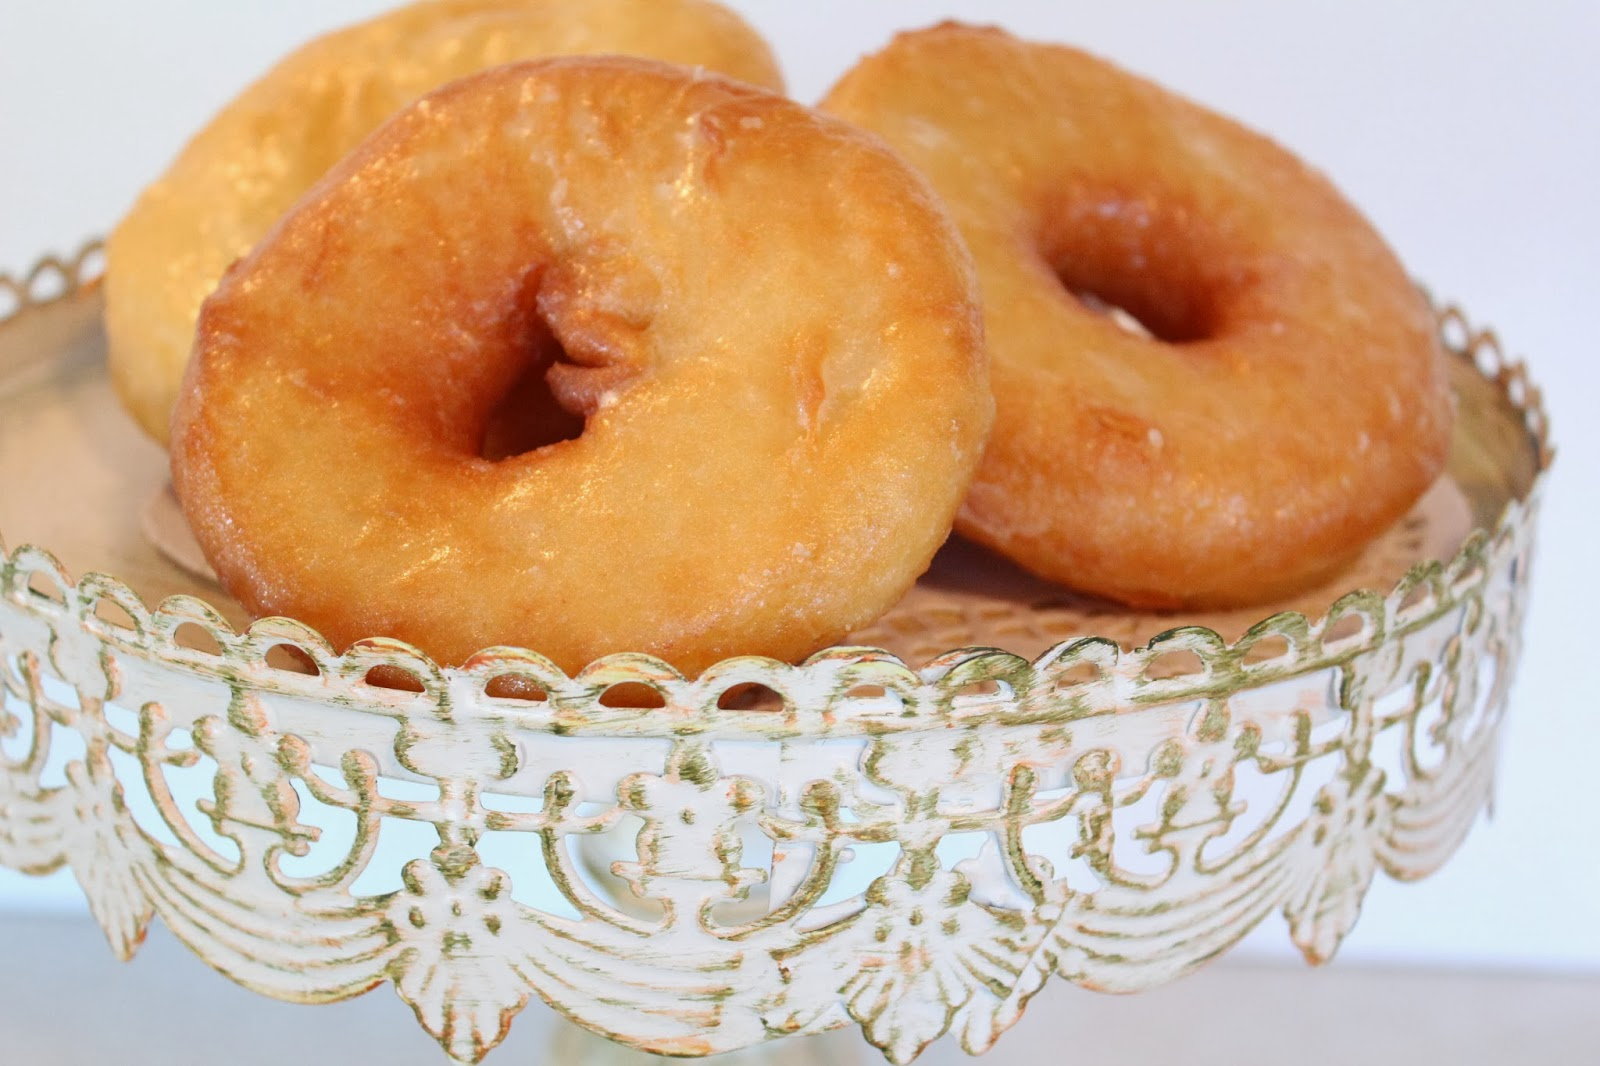 ... recipe was adapted from All Recipes Crispy Creamy Doughnuts here